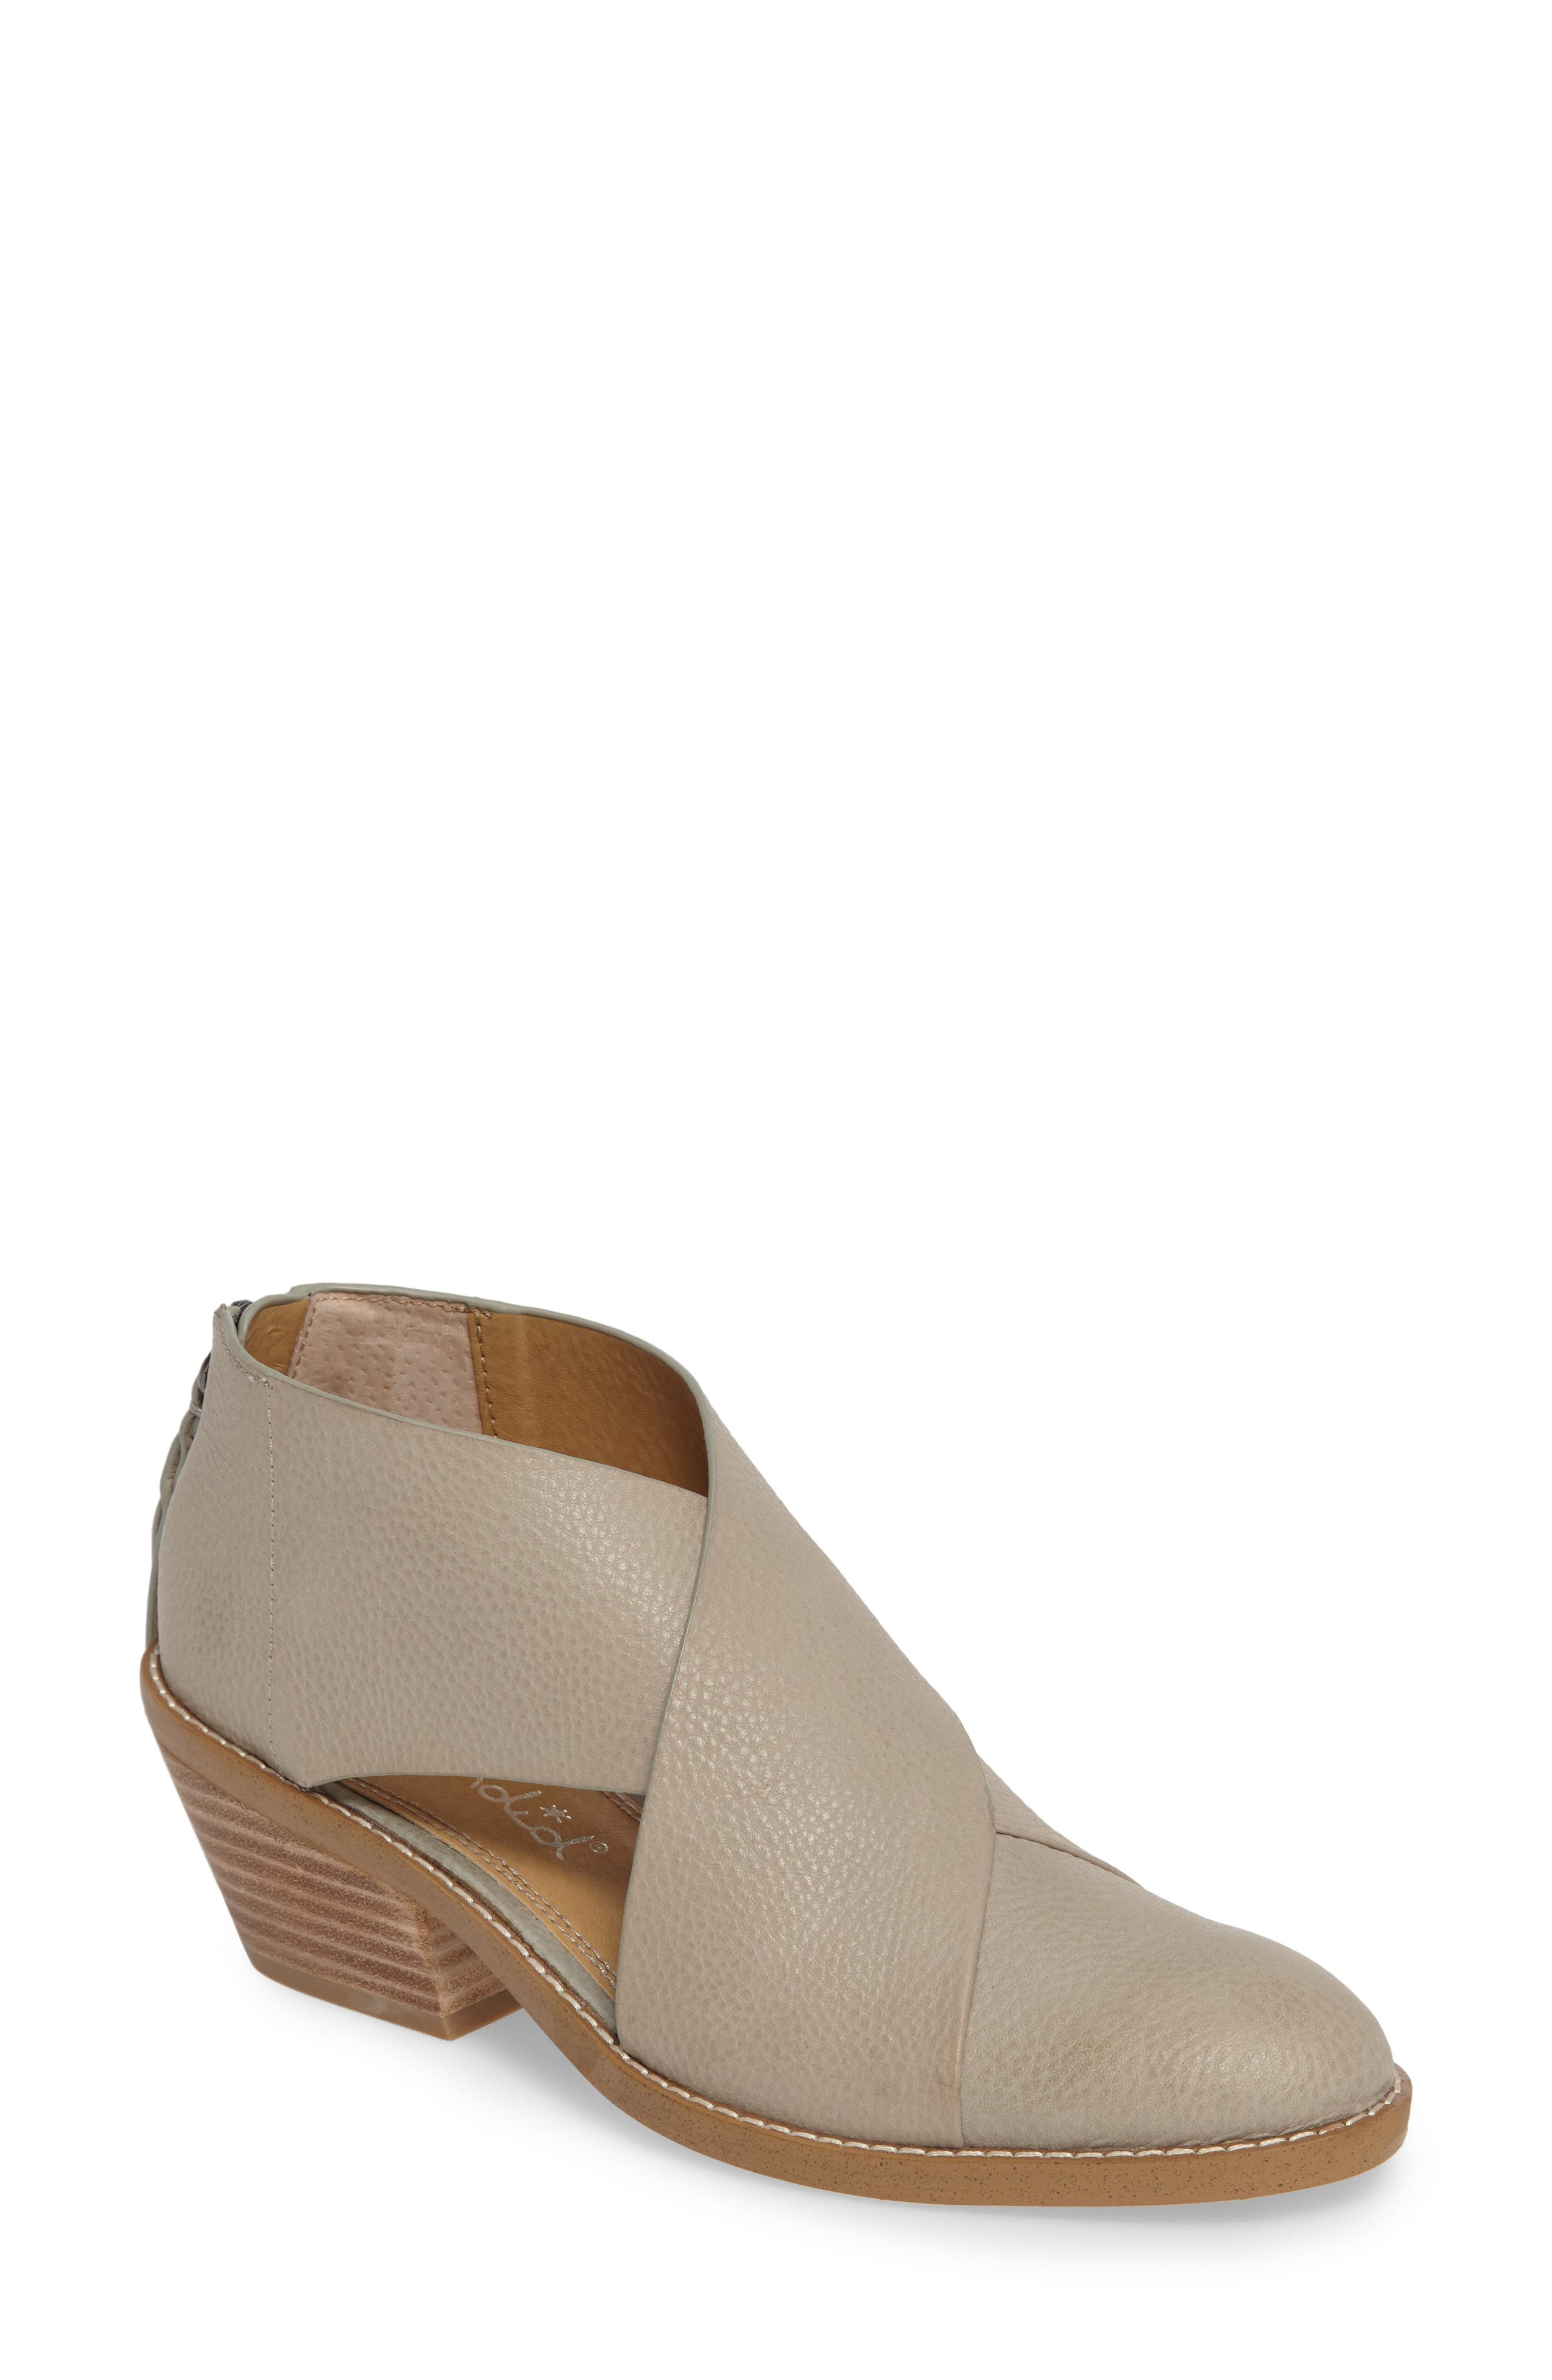 Danele Cutout Bootie,                         Main,                         color, Pearl Grey Leather